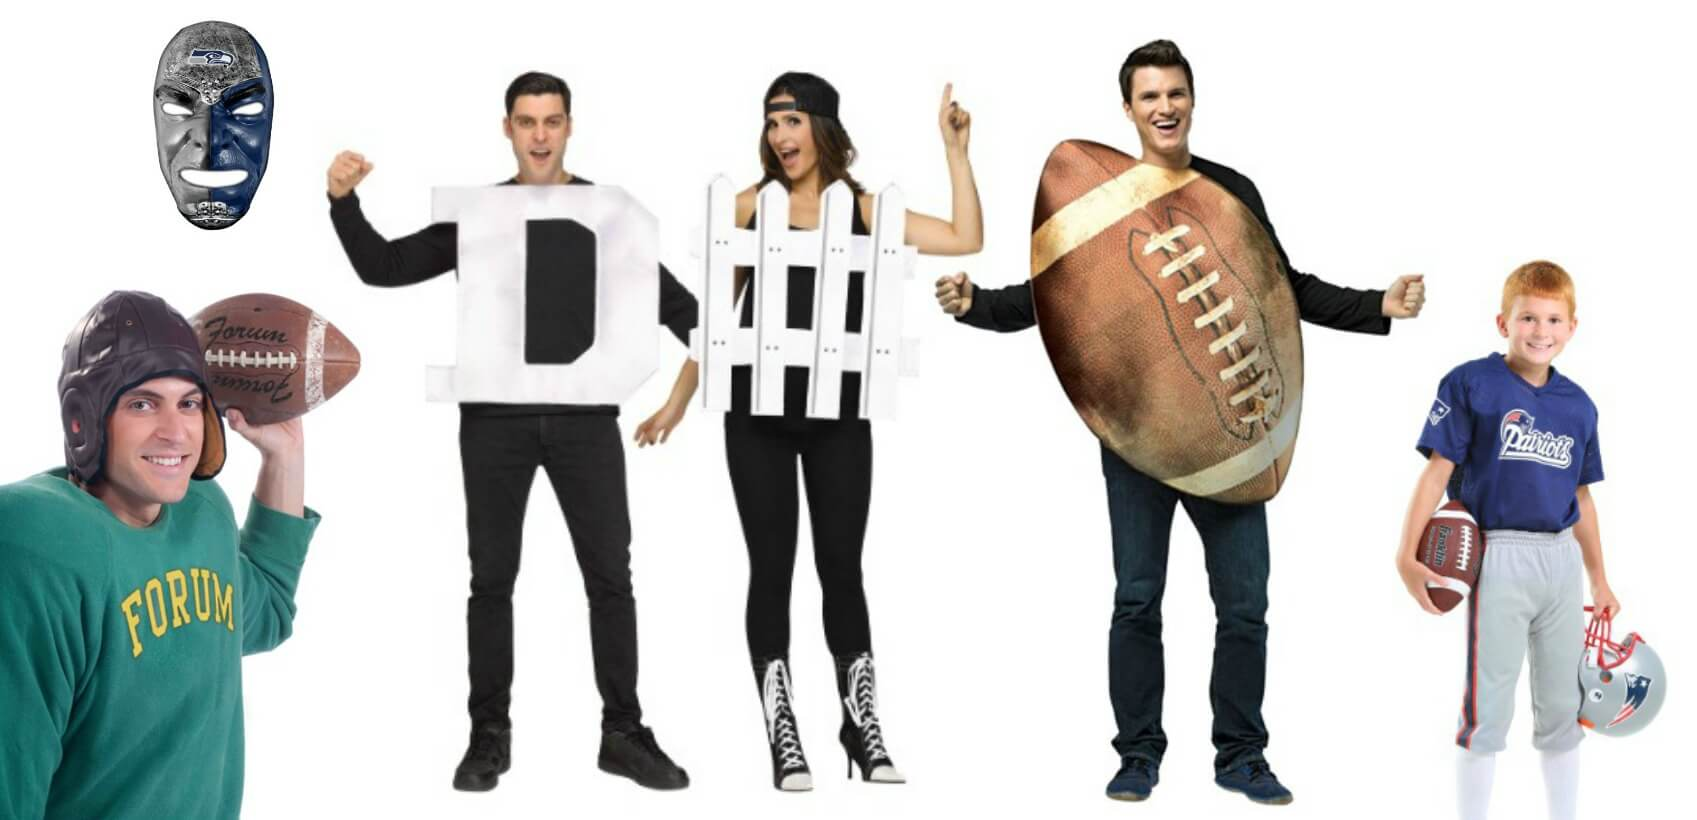 Costumes for Football fans